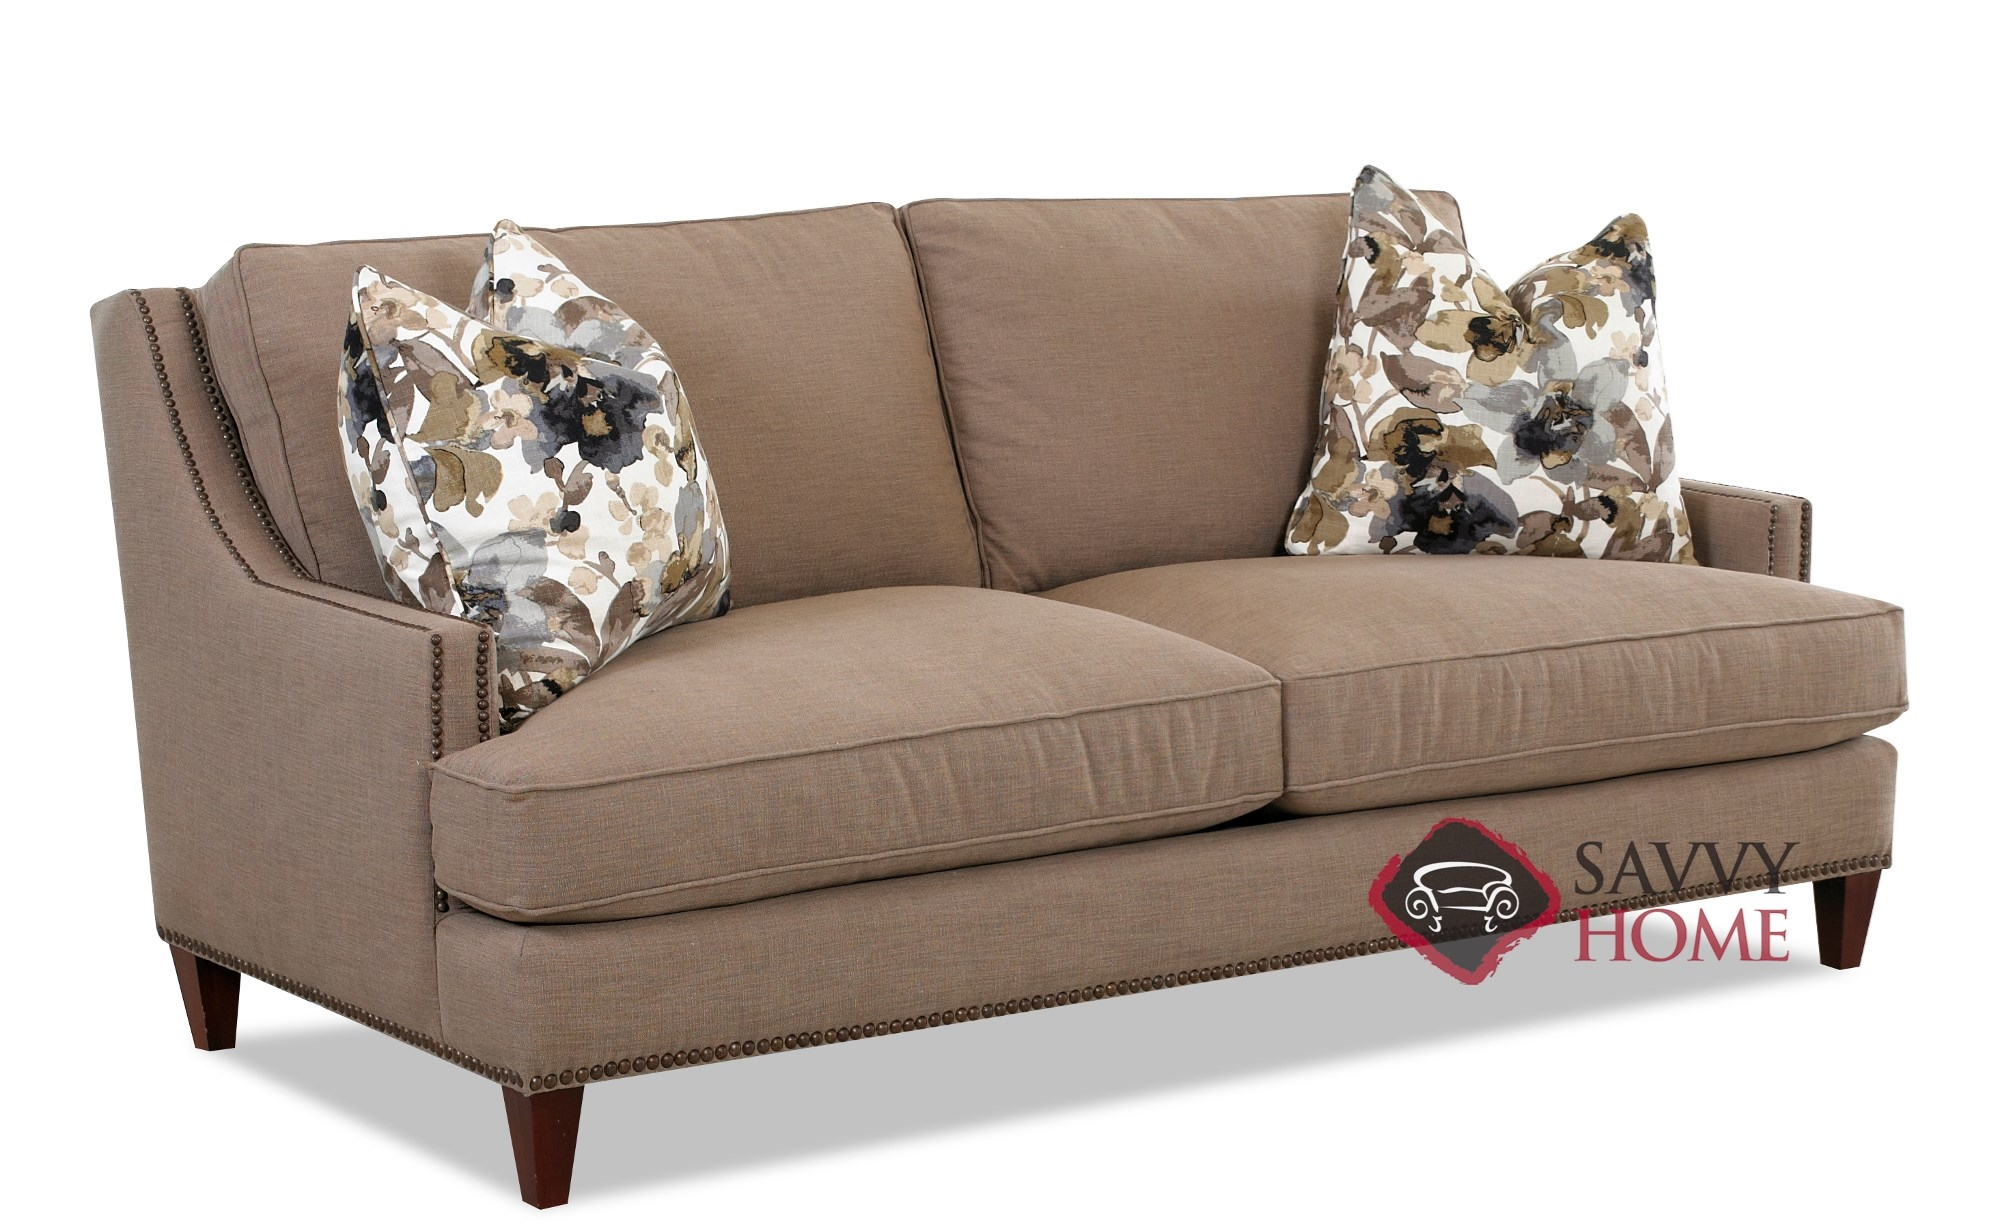 Dallas Sofa By Savvy Sideview